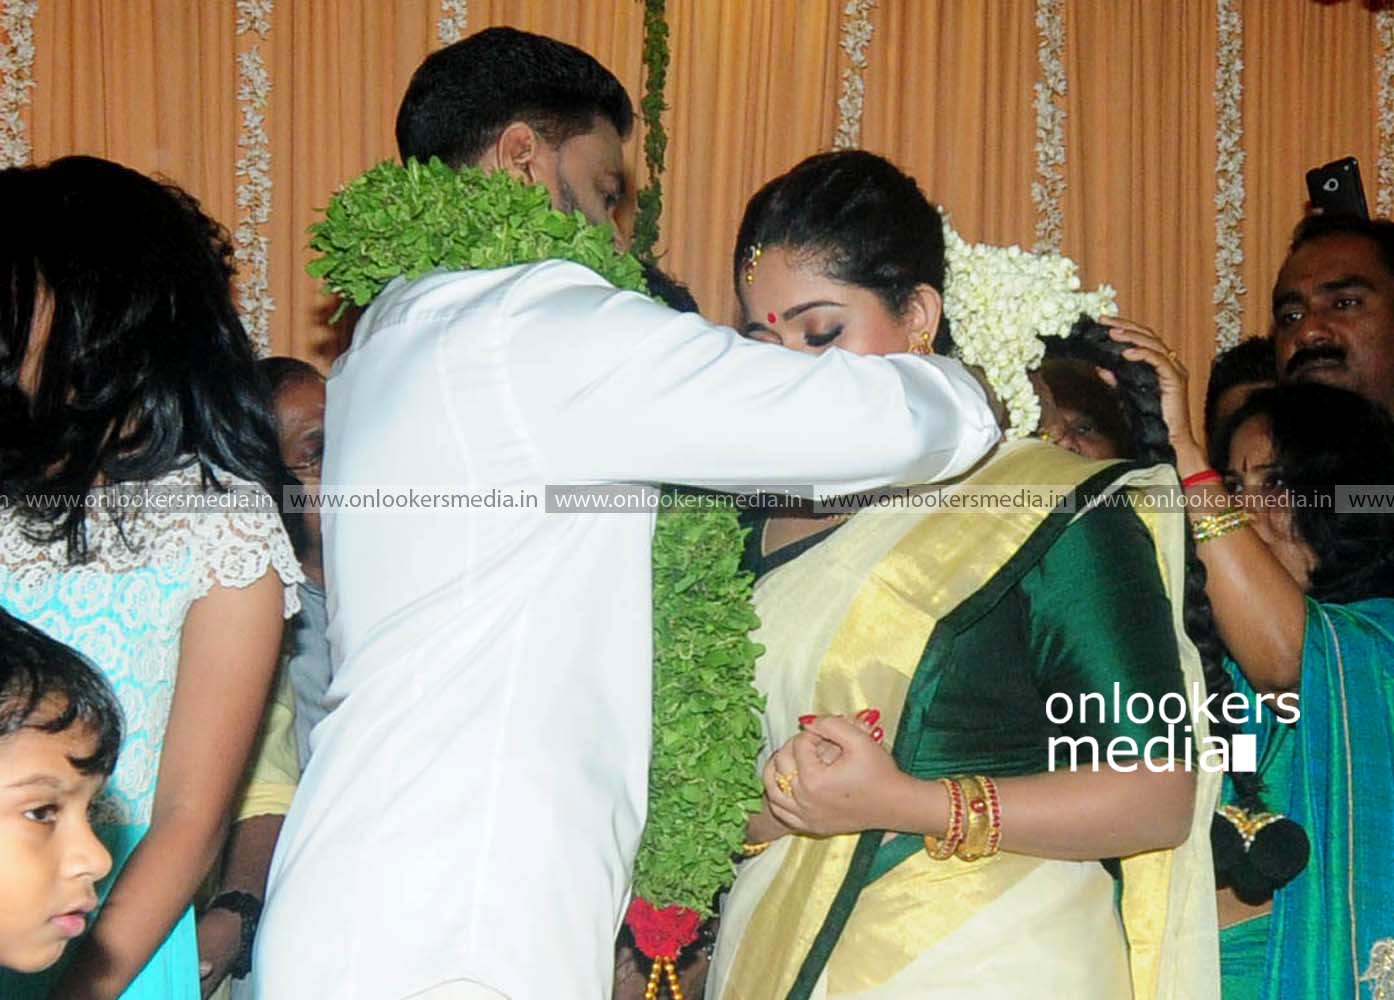 http://onlookersmedia.in/wp-content/uploads/2016/11/Dileep-Kavya-Madhavan-Wedding-Stills-Photos-16.jpg